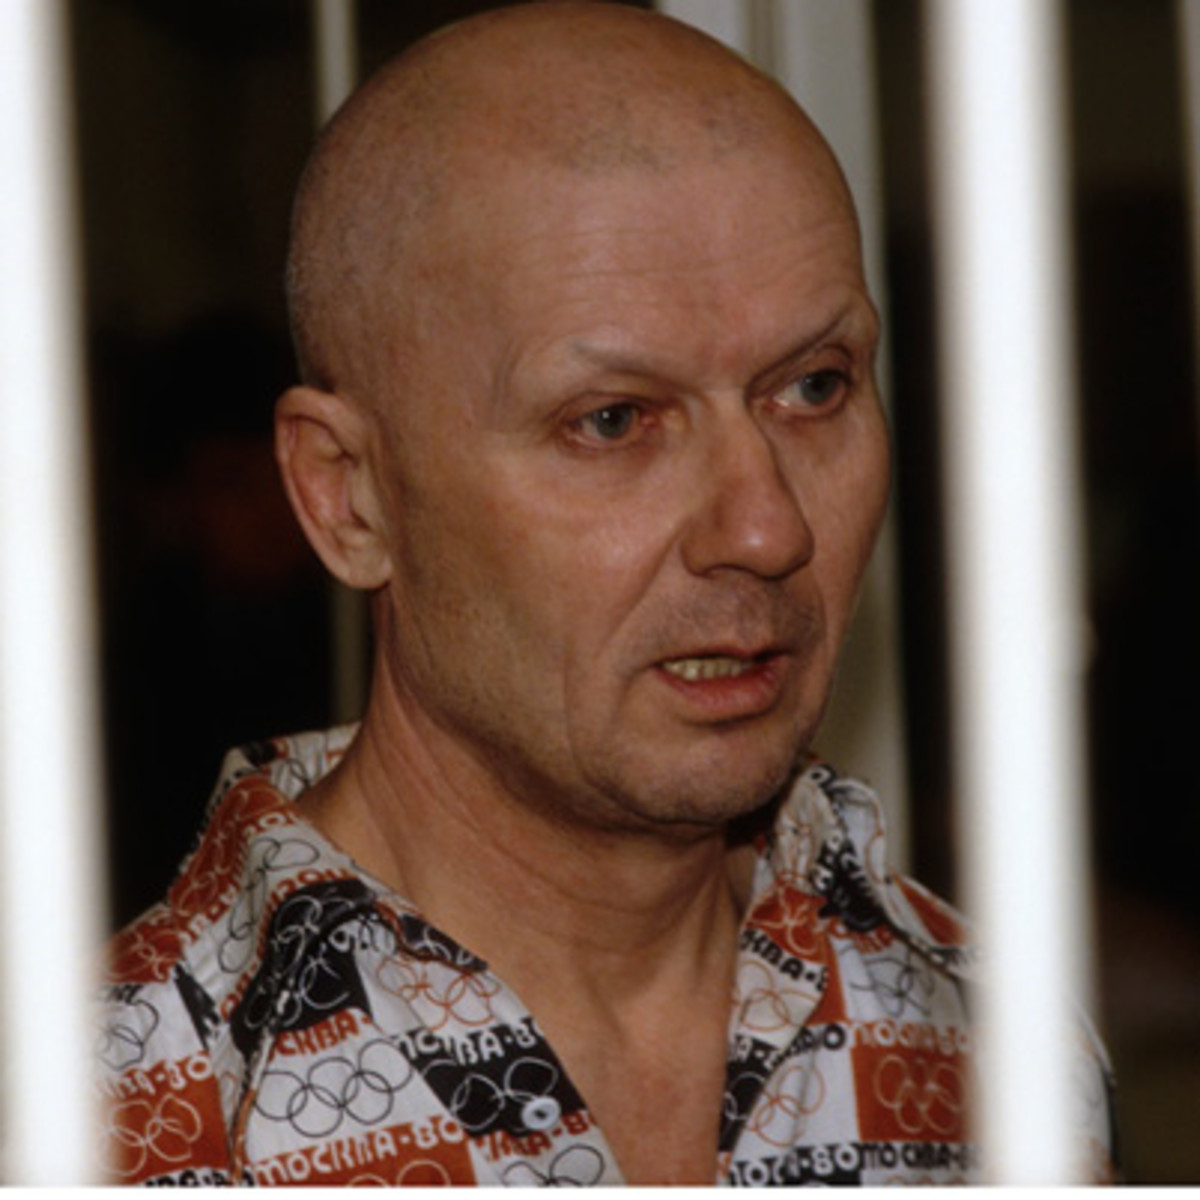 How many people did Andrei Chikatilo kill